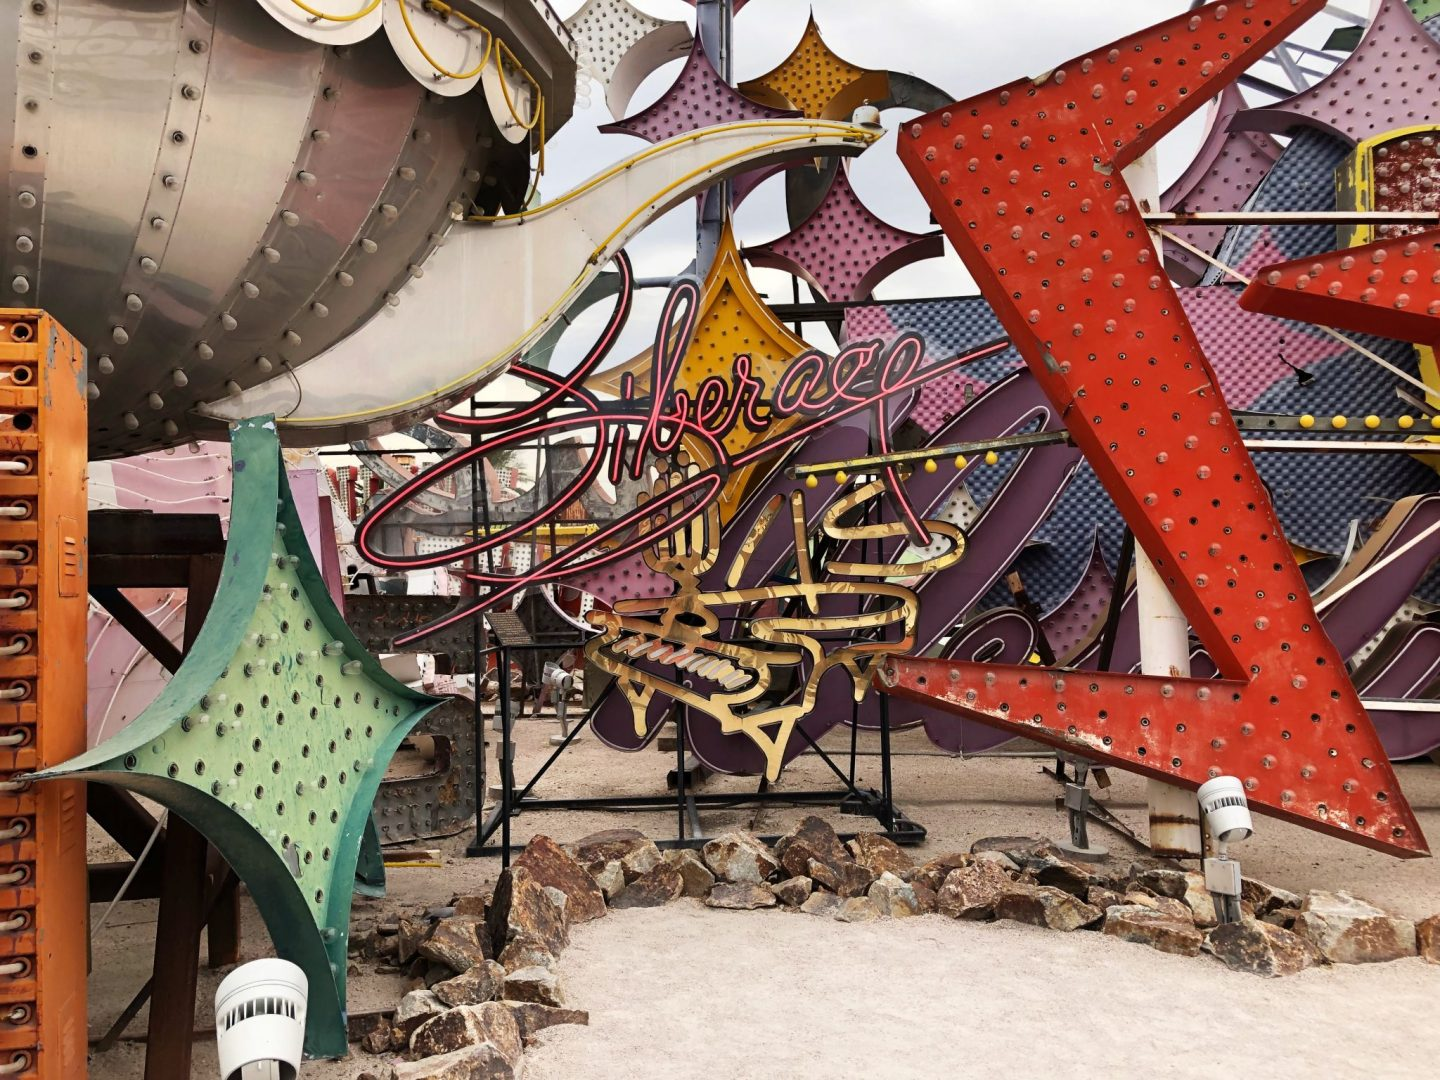 Neon museum las vegas – neon museum las vegas reviews – how to get to neon museum las vegas – museums in las vegas – las vegas art museum – things to do when in vegas